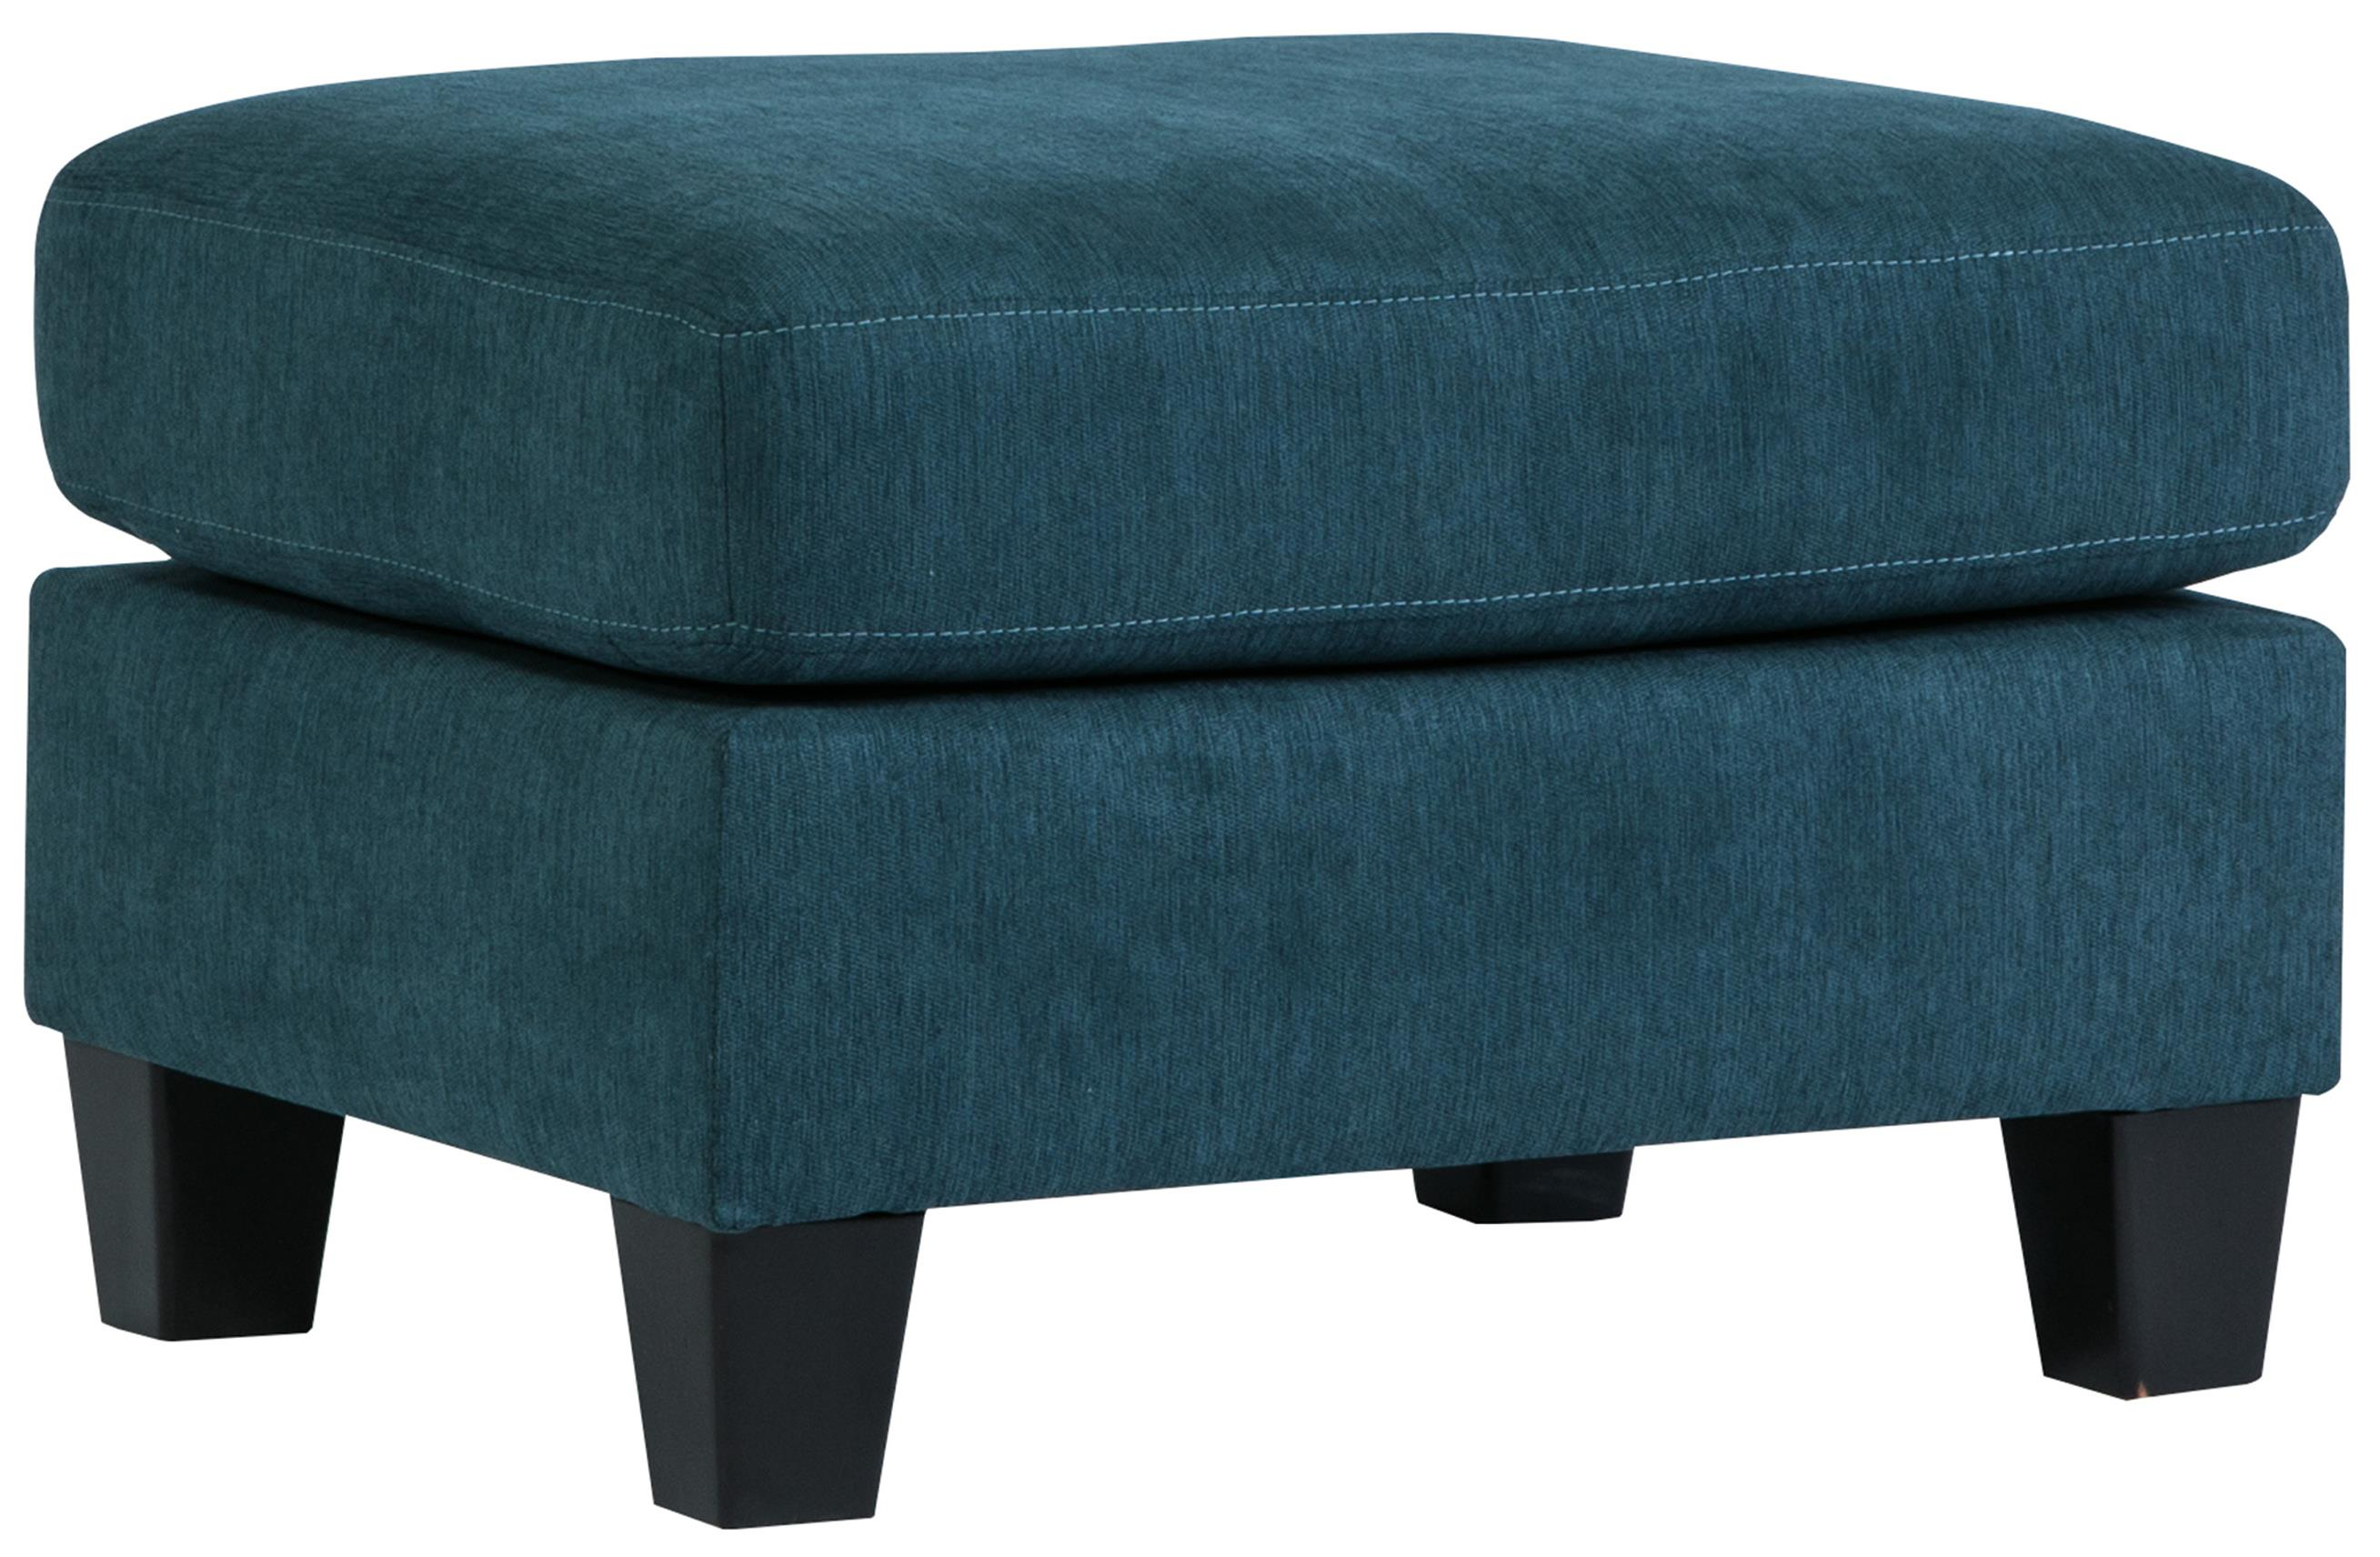 Signature Design by Ashley Sagen Ottoman - Item Number: 9390214